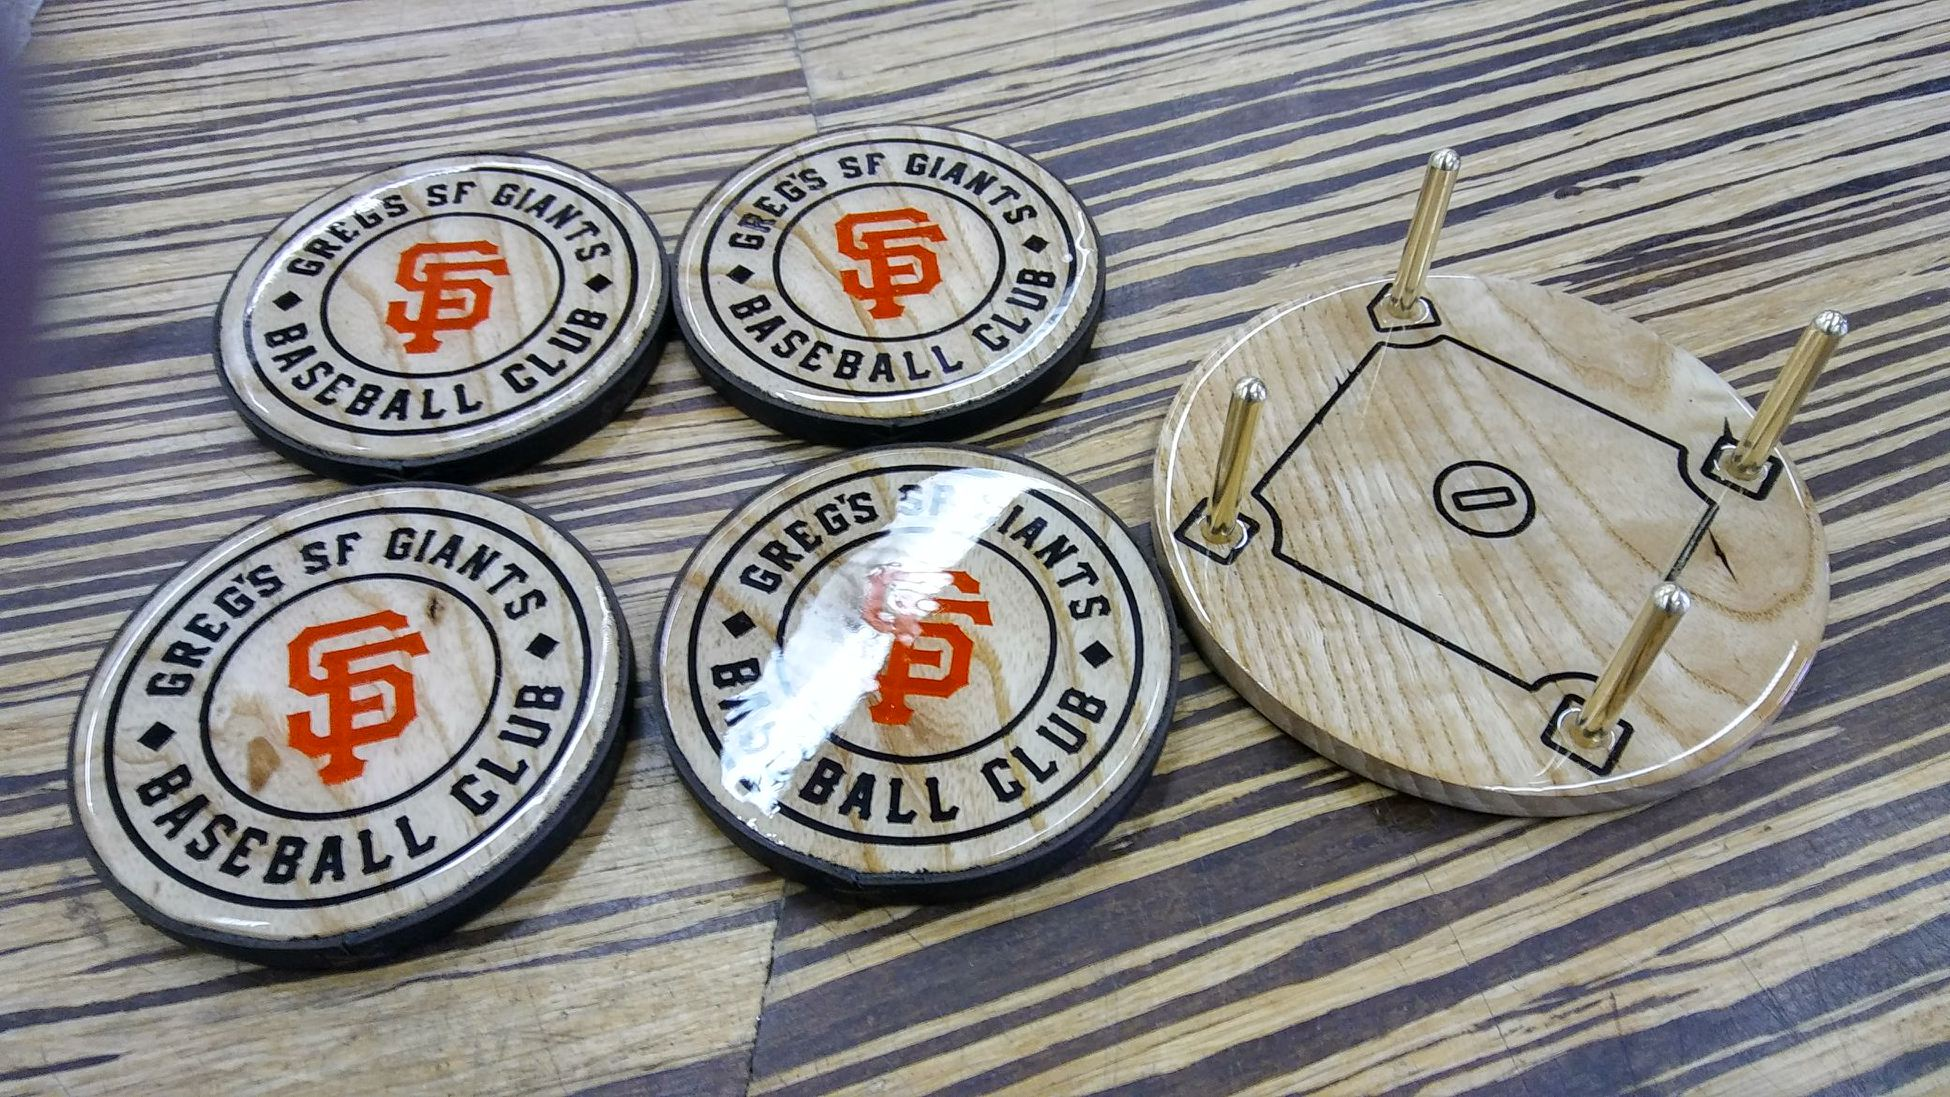 SF Giants coasters